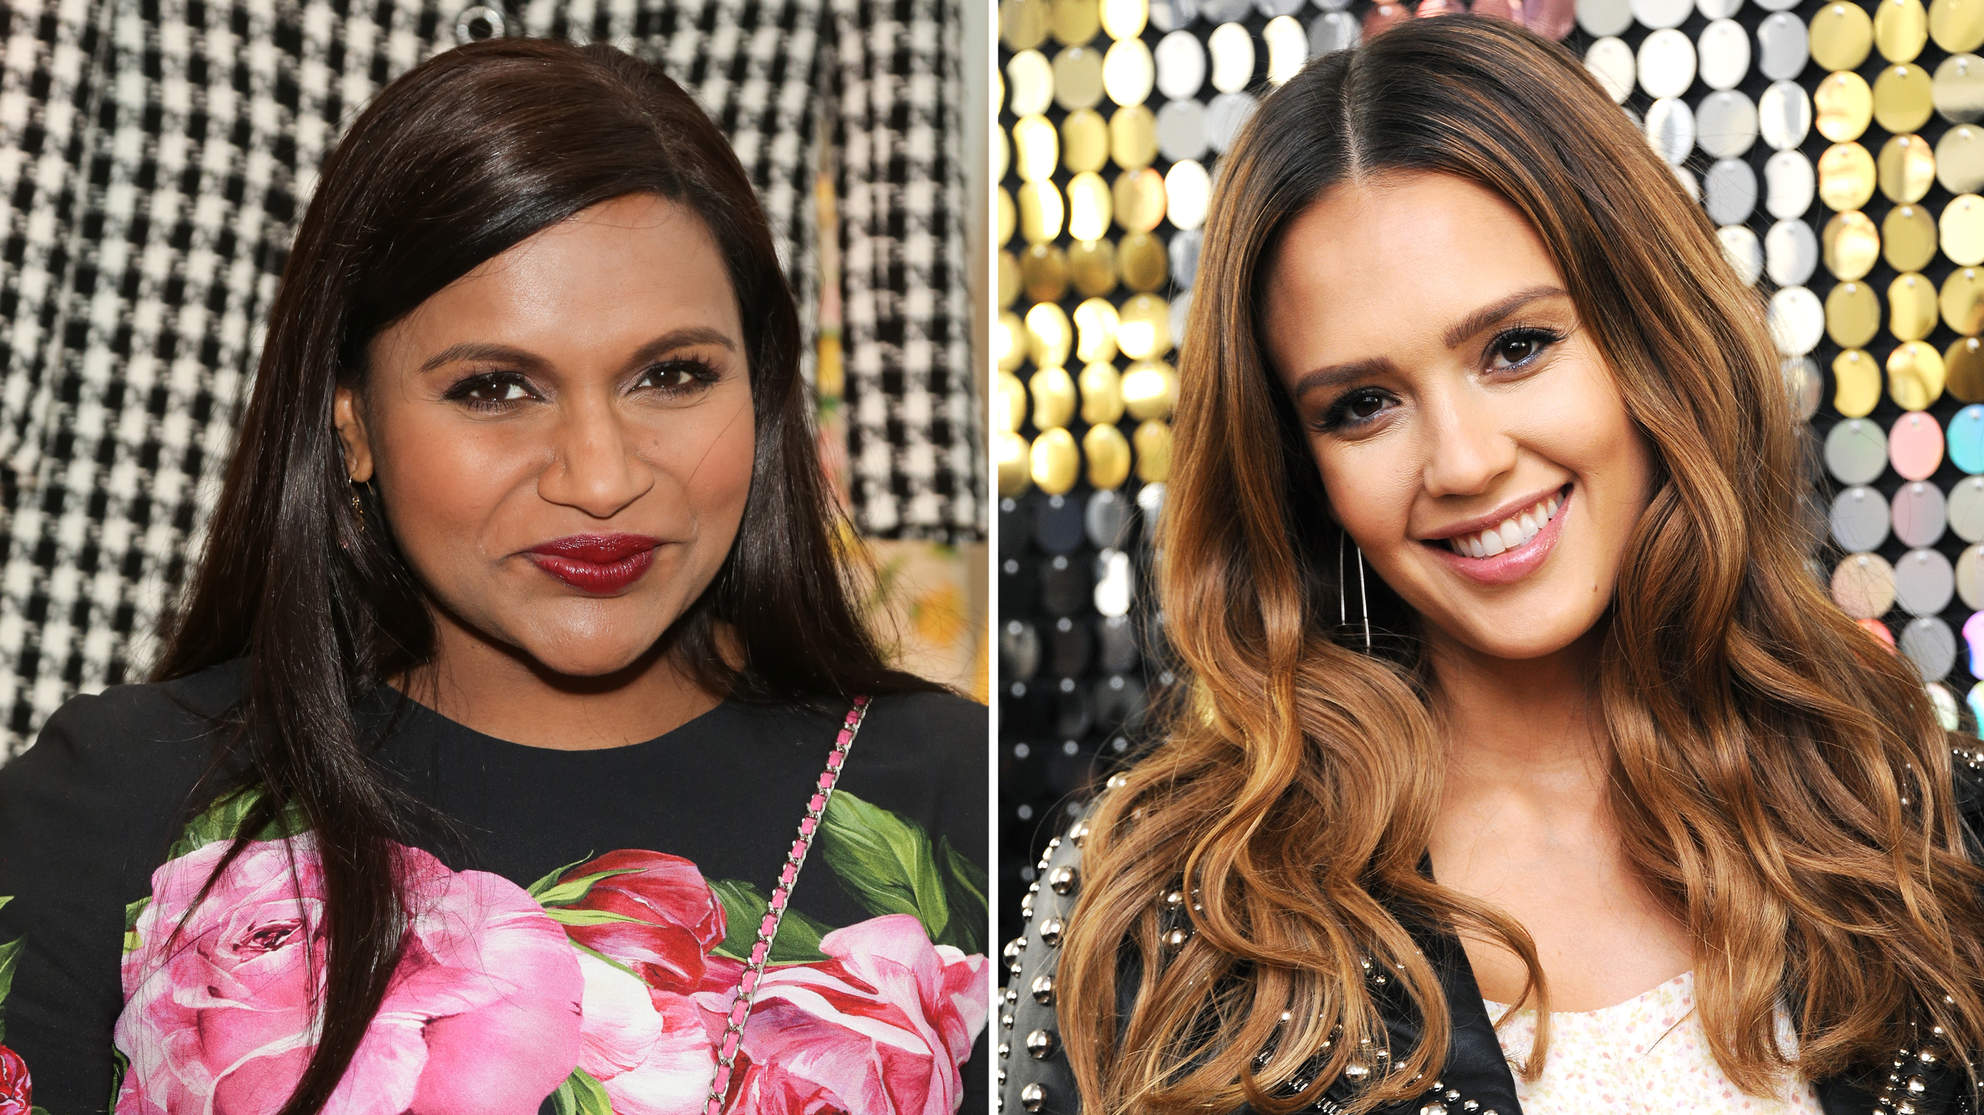 How to Make the Protein-Packed Breakfast Mindy Kaling and Jessica Alba Love